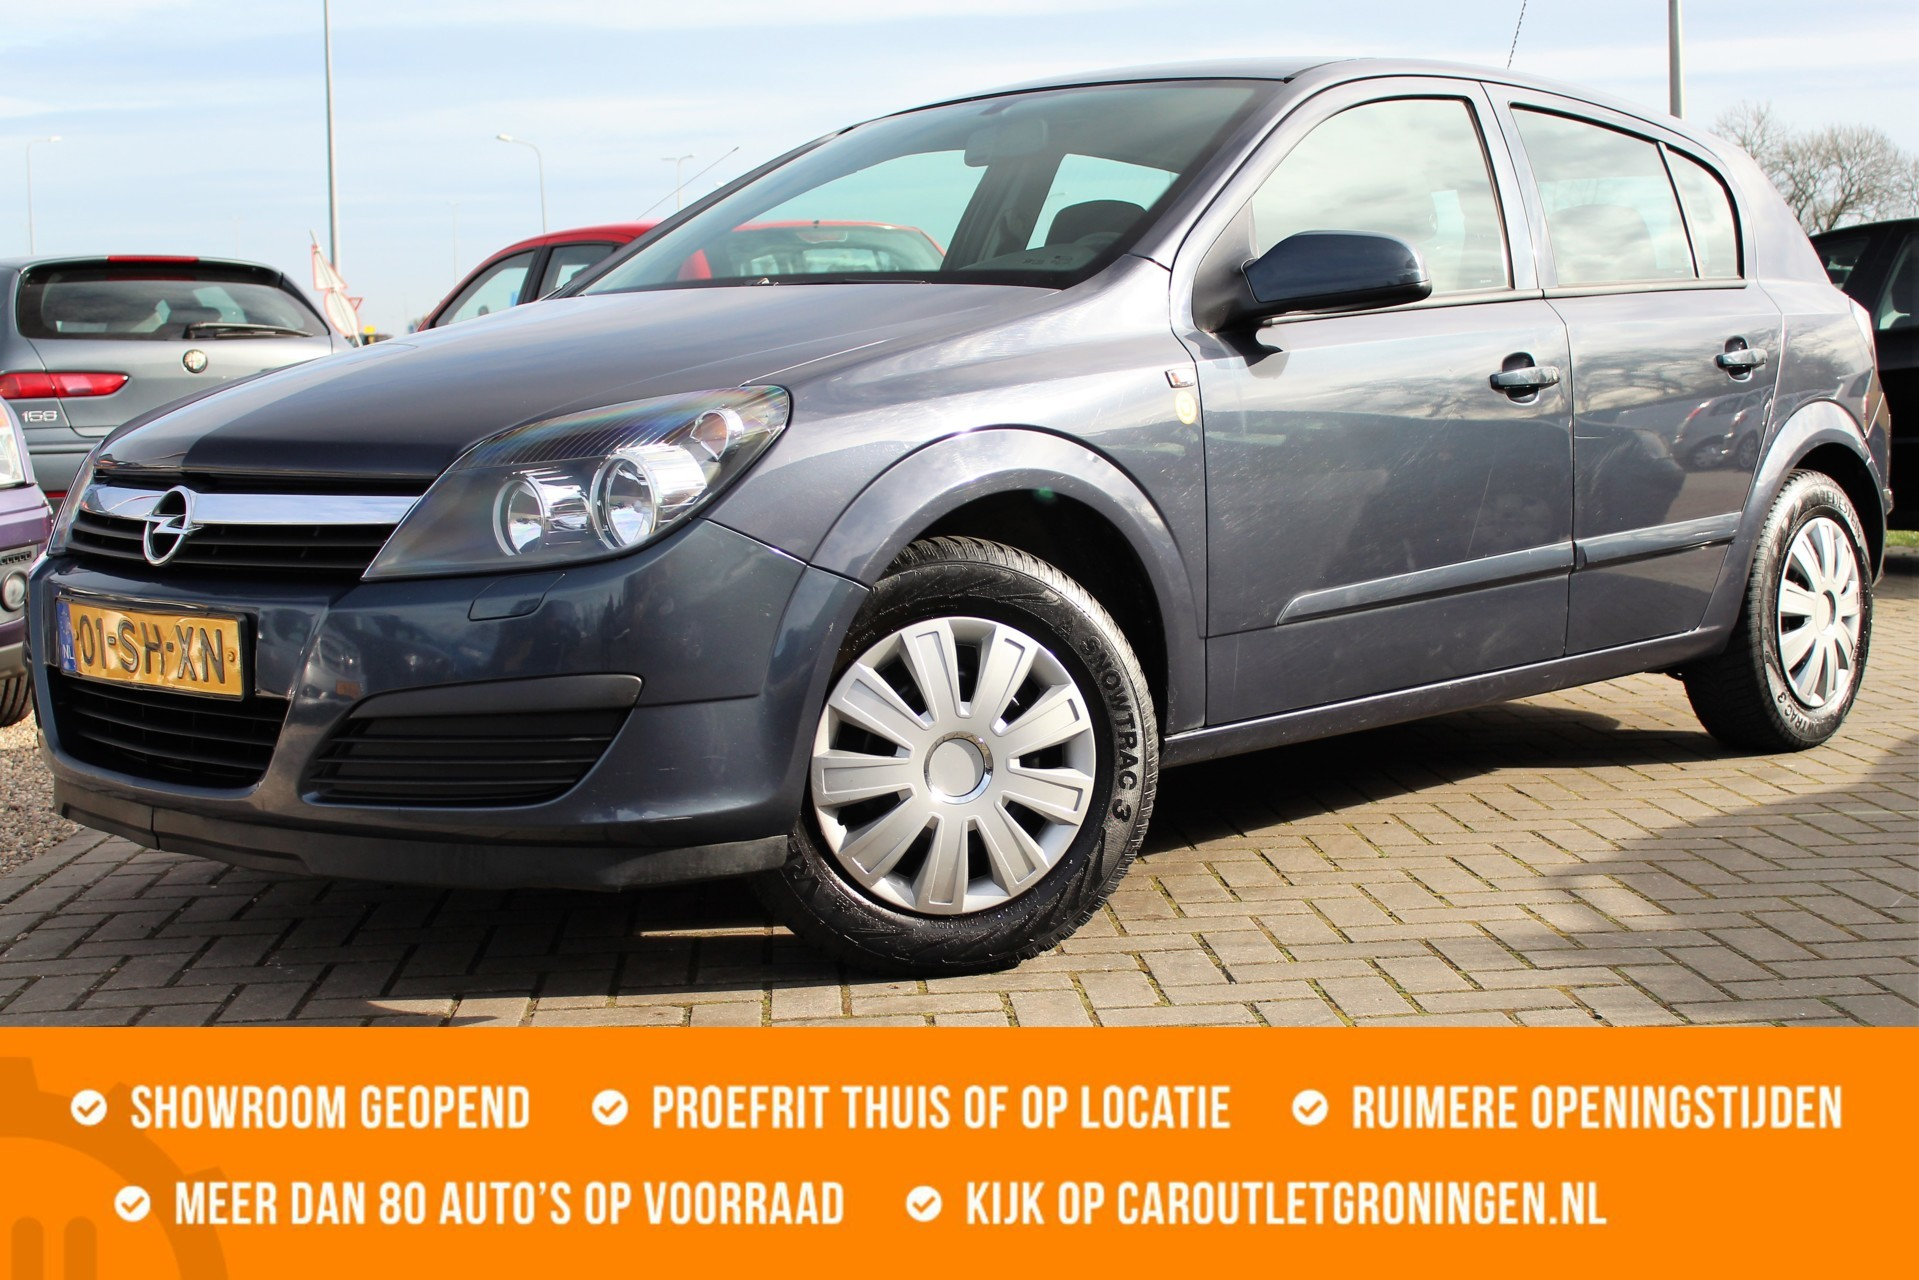 Caroutlet Groningen - Opel Astra 1.6 Business | NW APK | 5 DEURS | AIRCO |